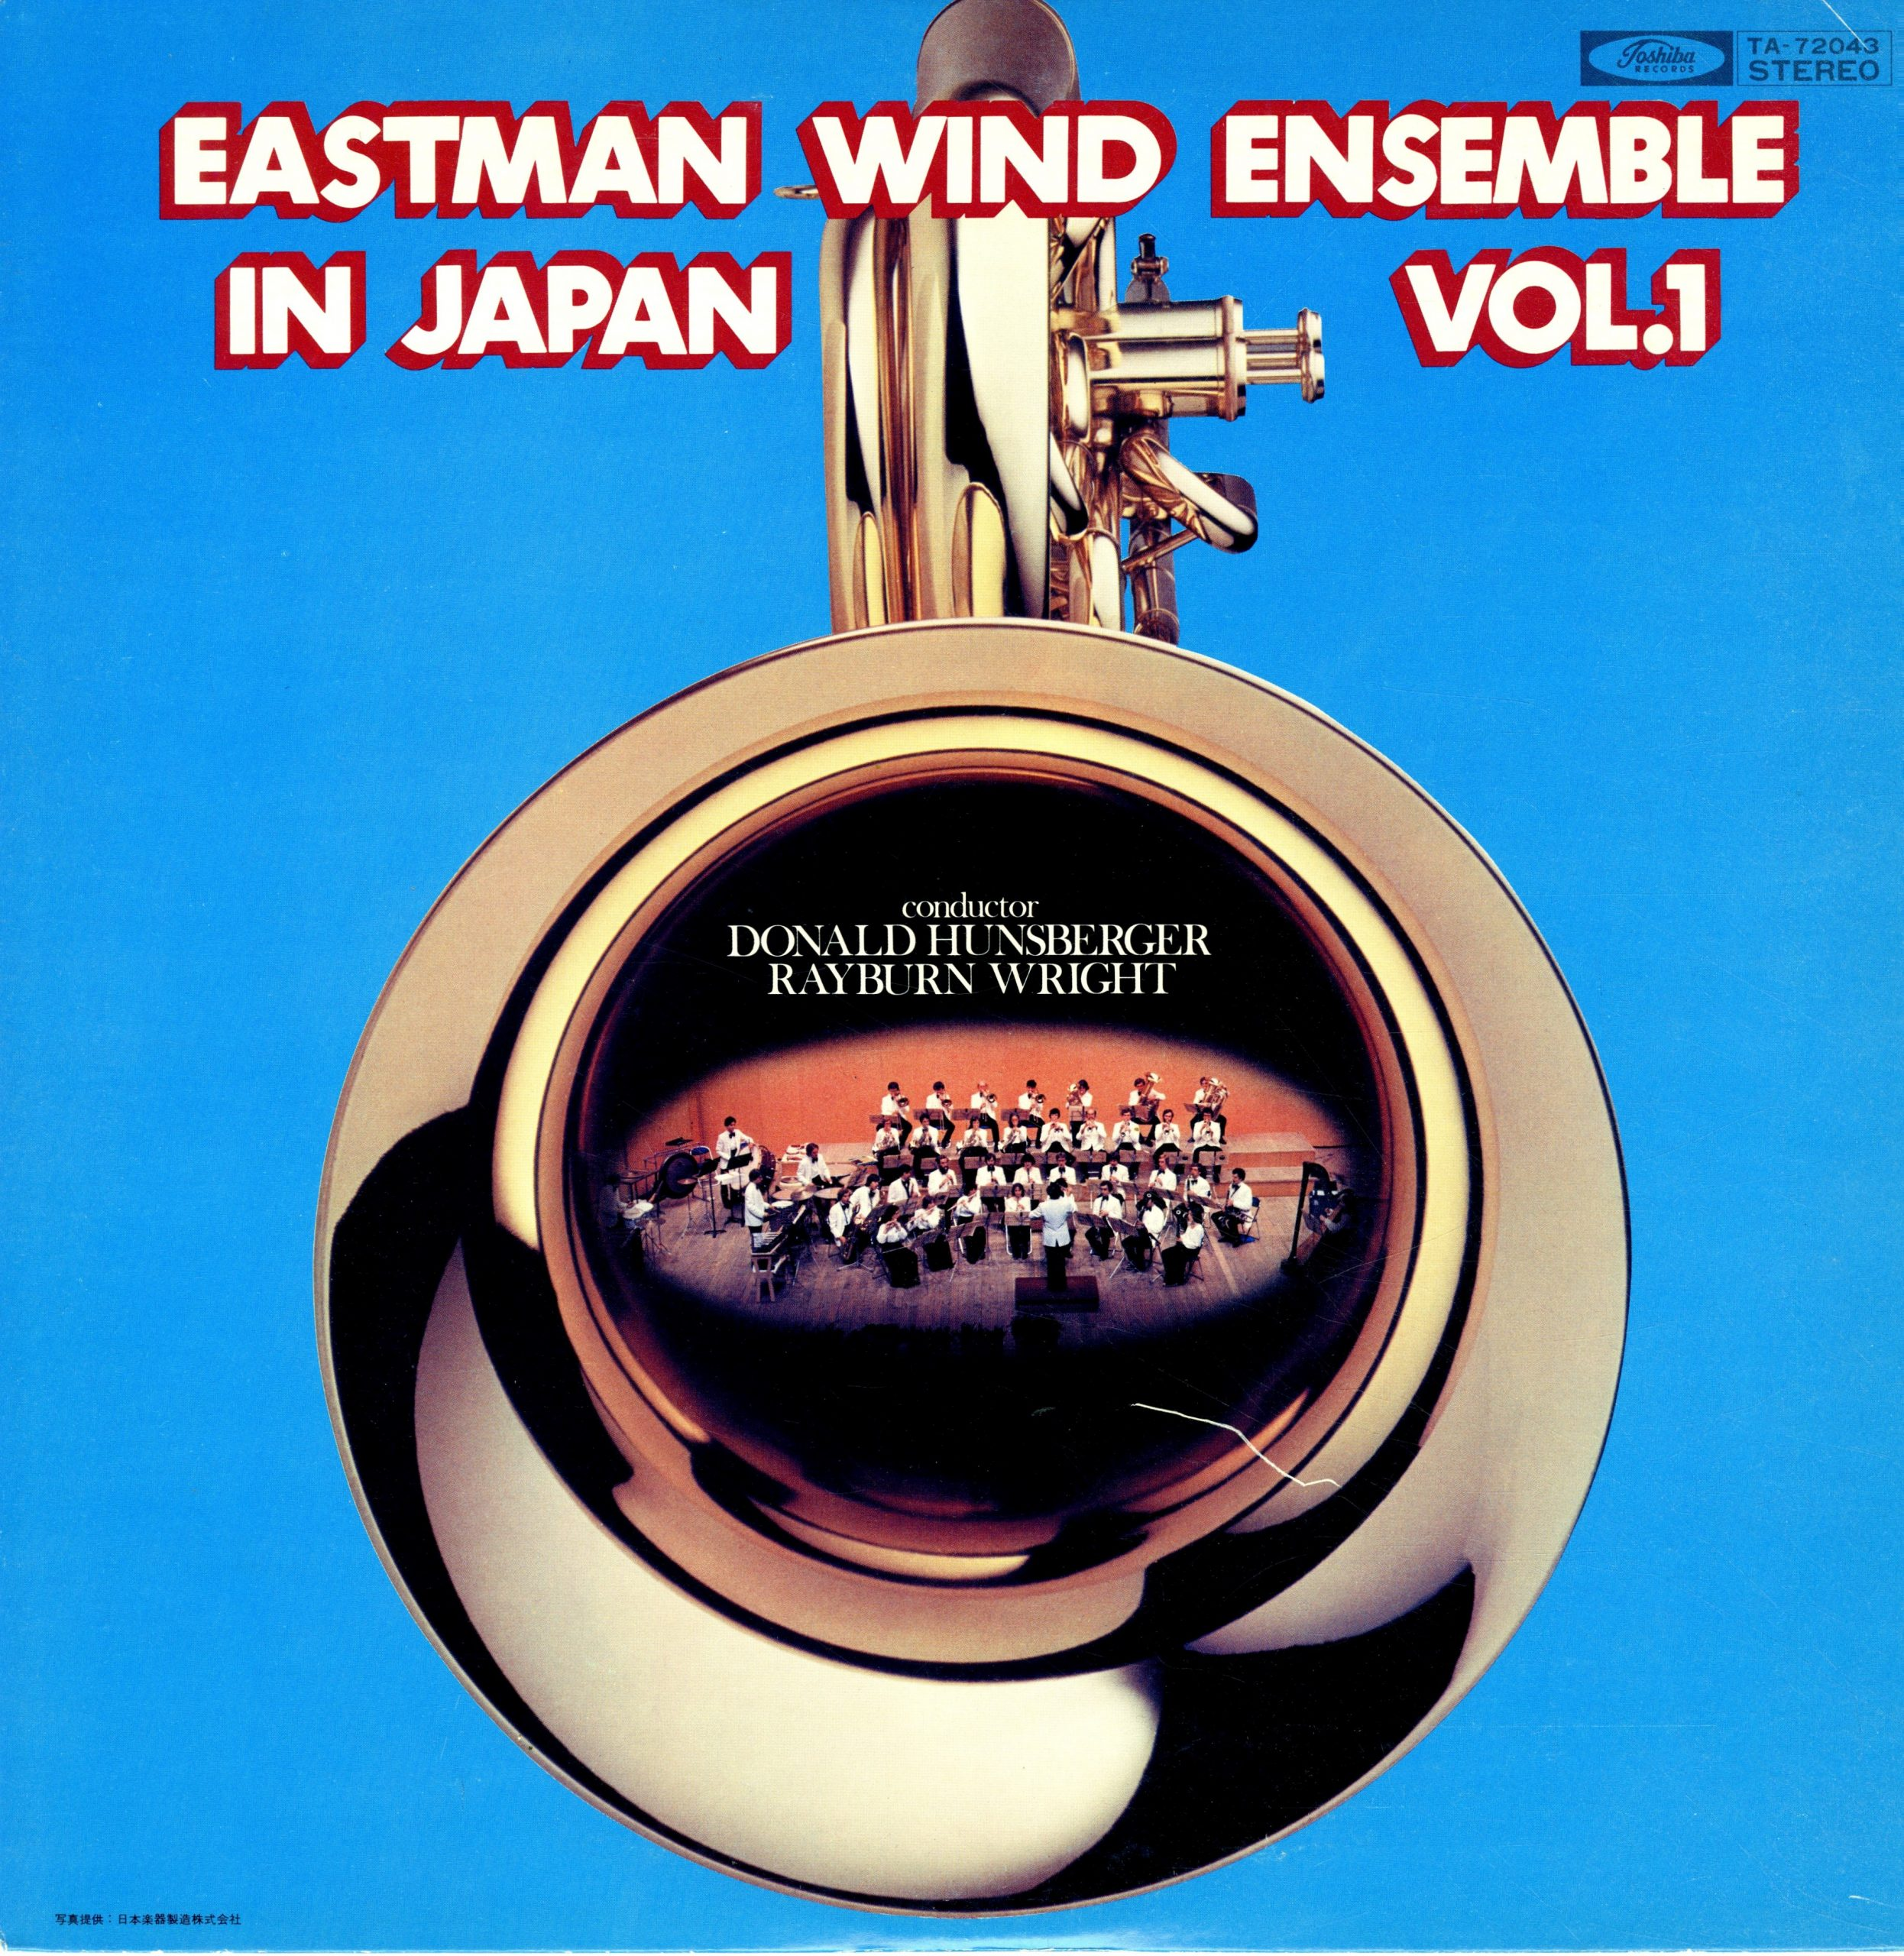 Album cover of the LP Eastman Wind Ensemble in Japan, Vol. I, released by Toshiba Records.